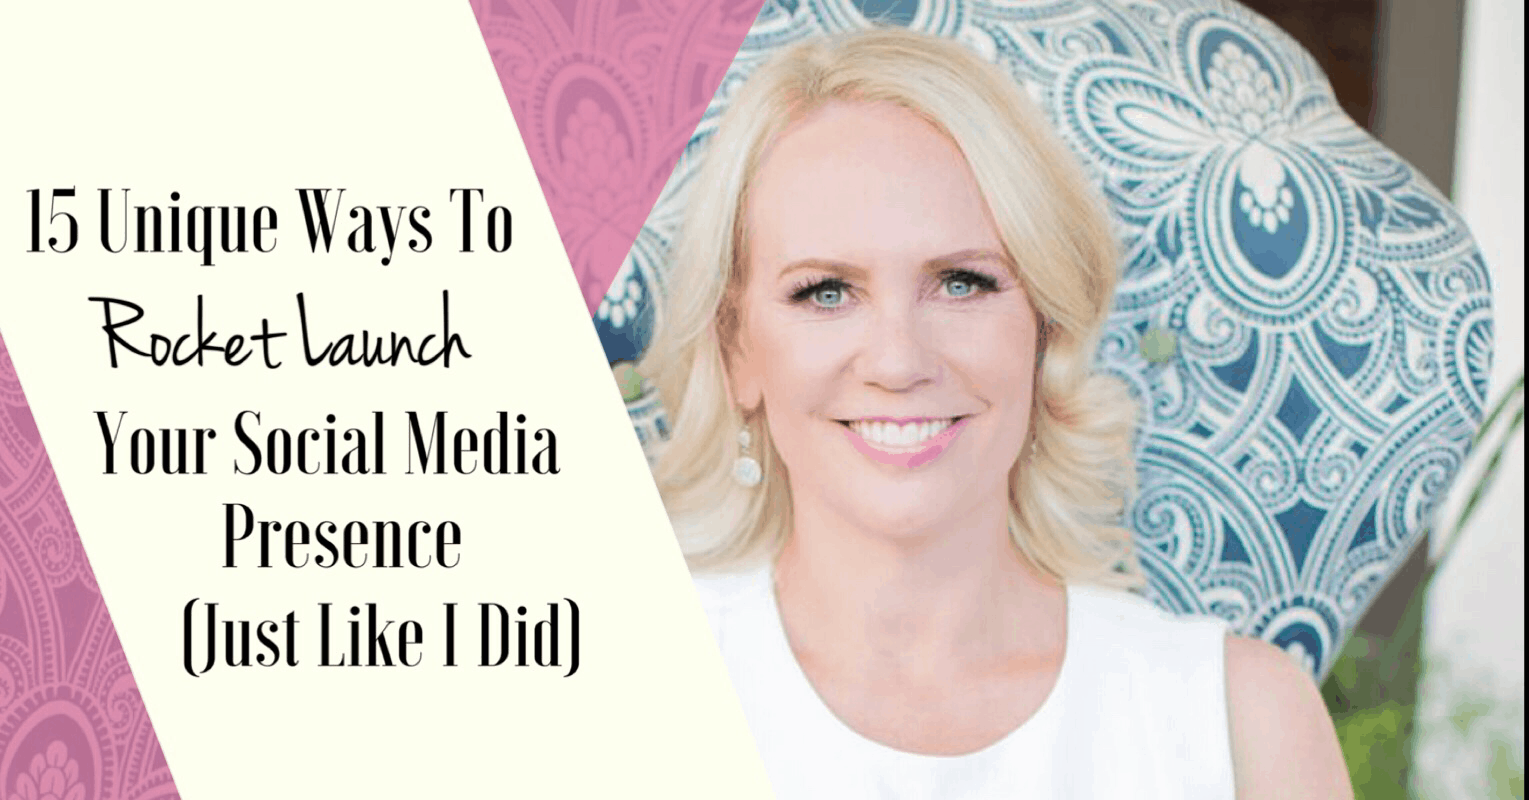 15 Unique Ways to Rocket Launch Your Social Media Presence (Just like I did)